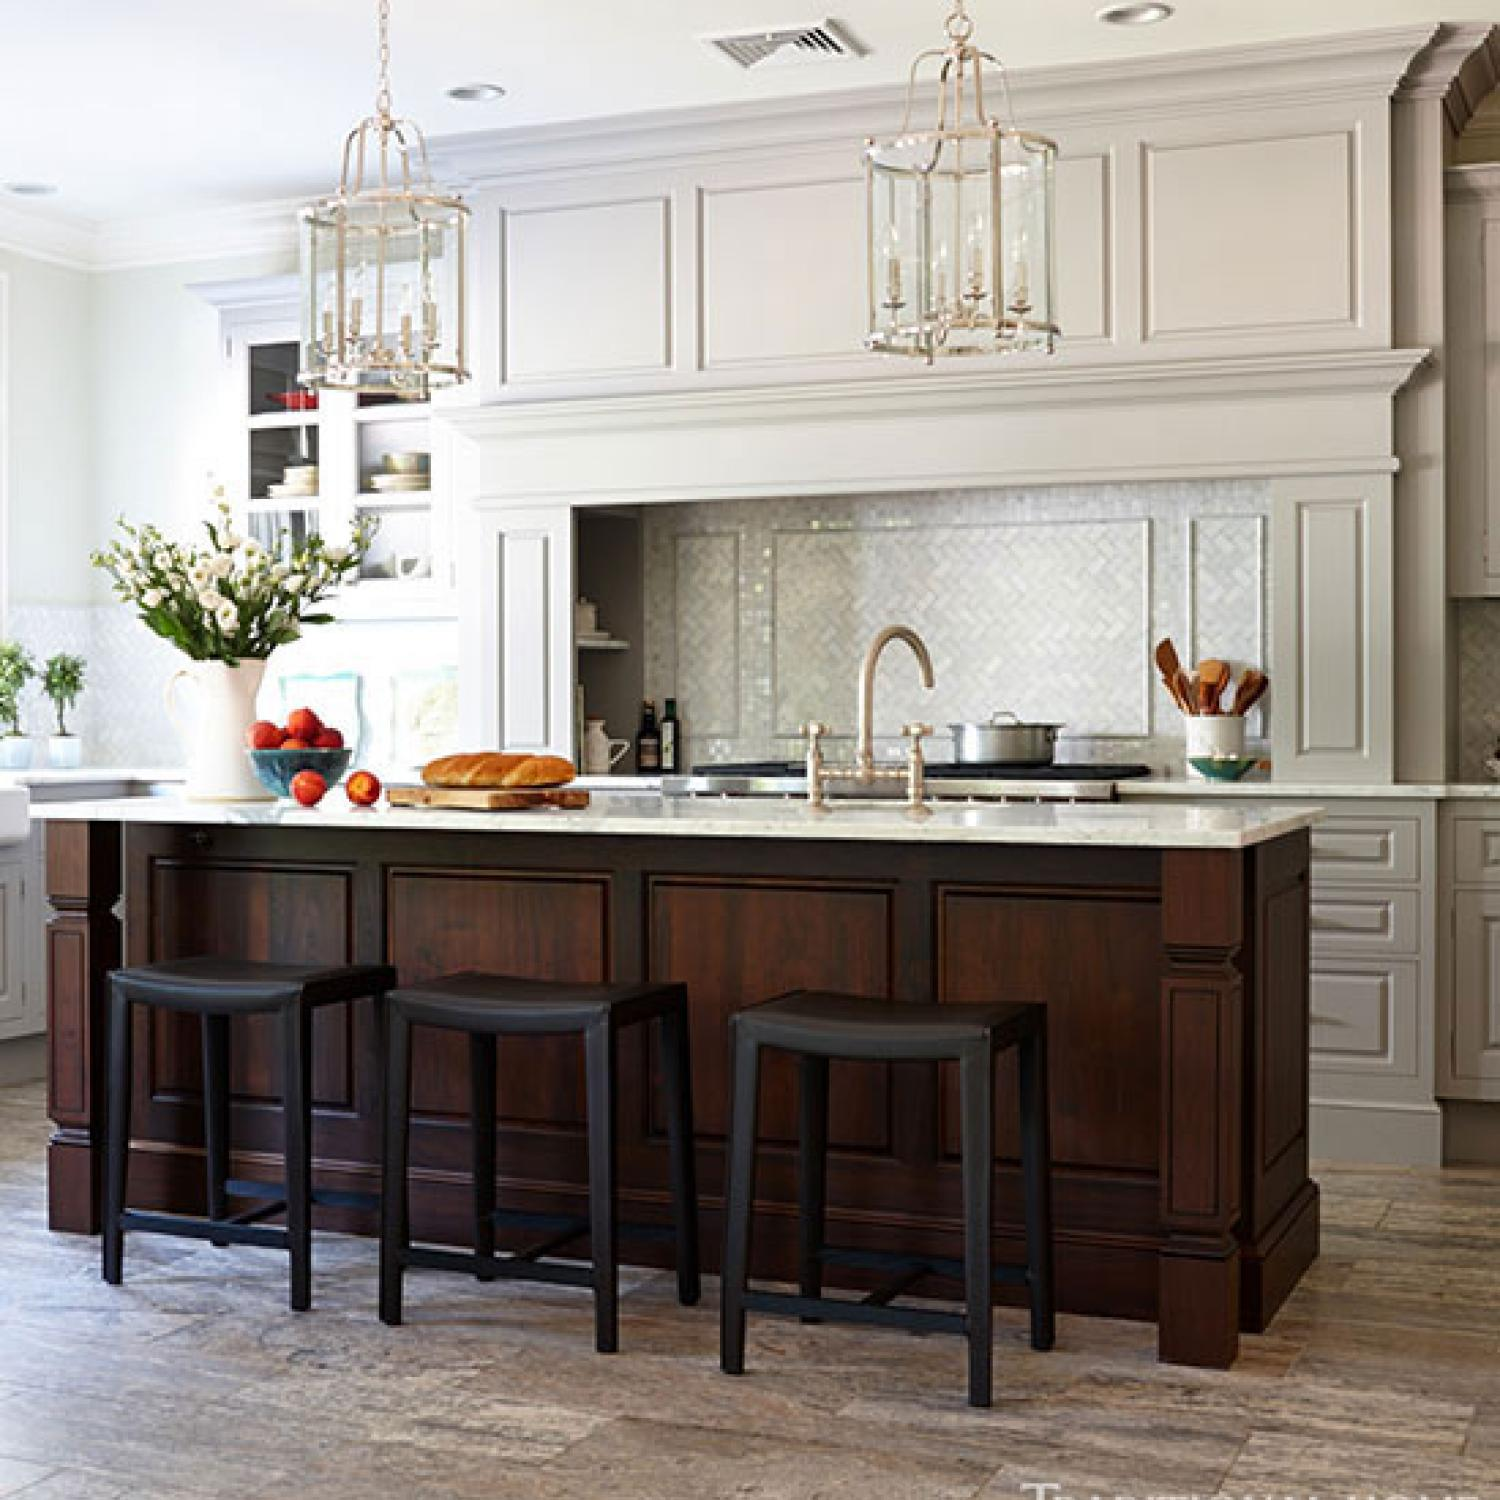 Organized Efficient Kitchen With Cool And Classic Styling